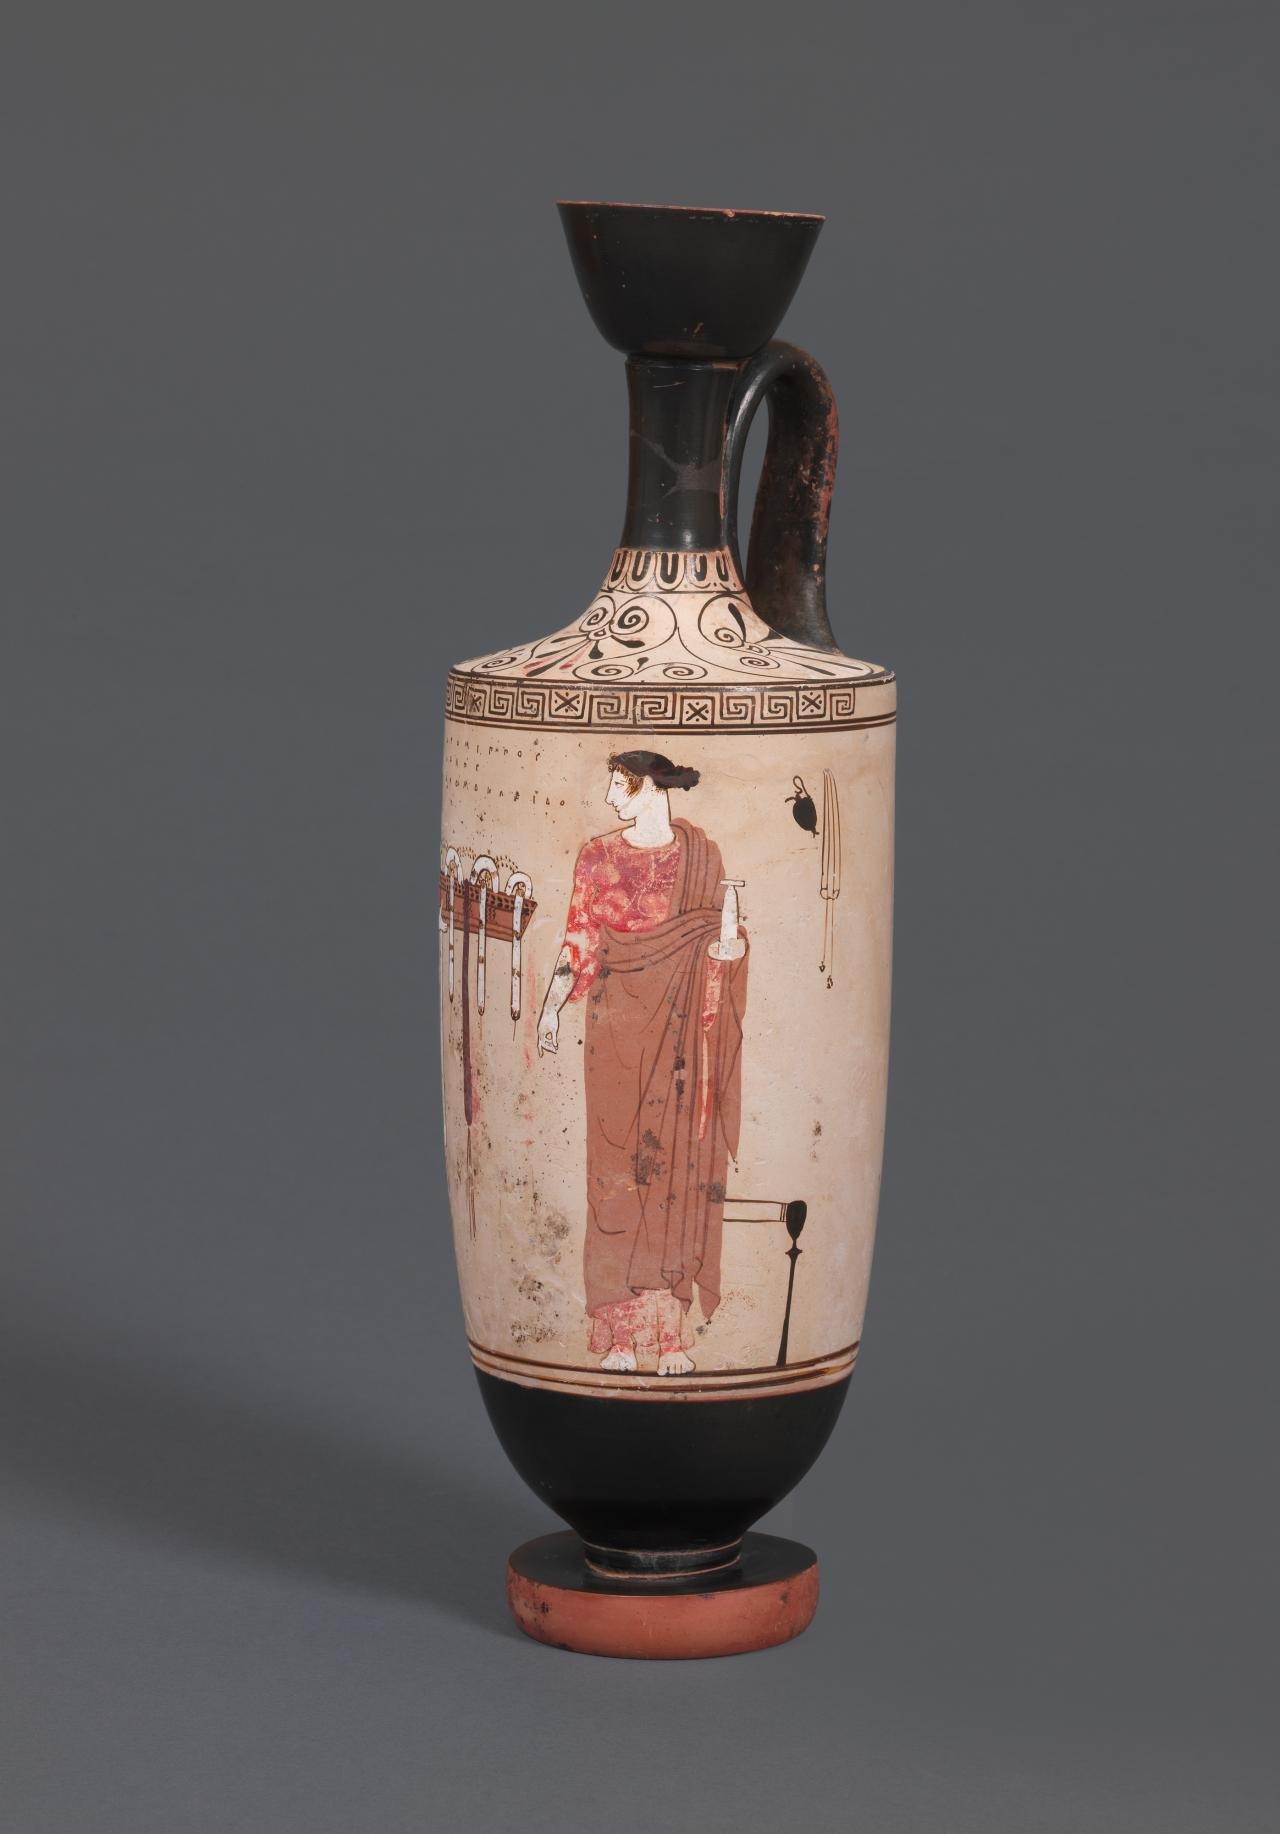 Lekythos (Attic white-ground ware)